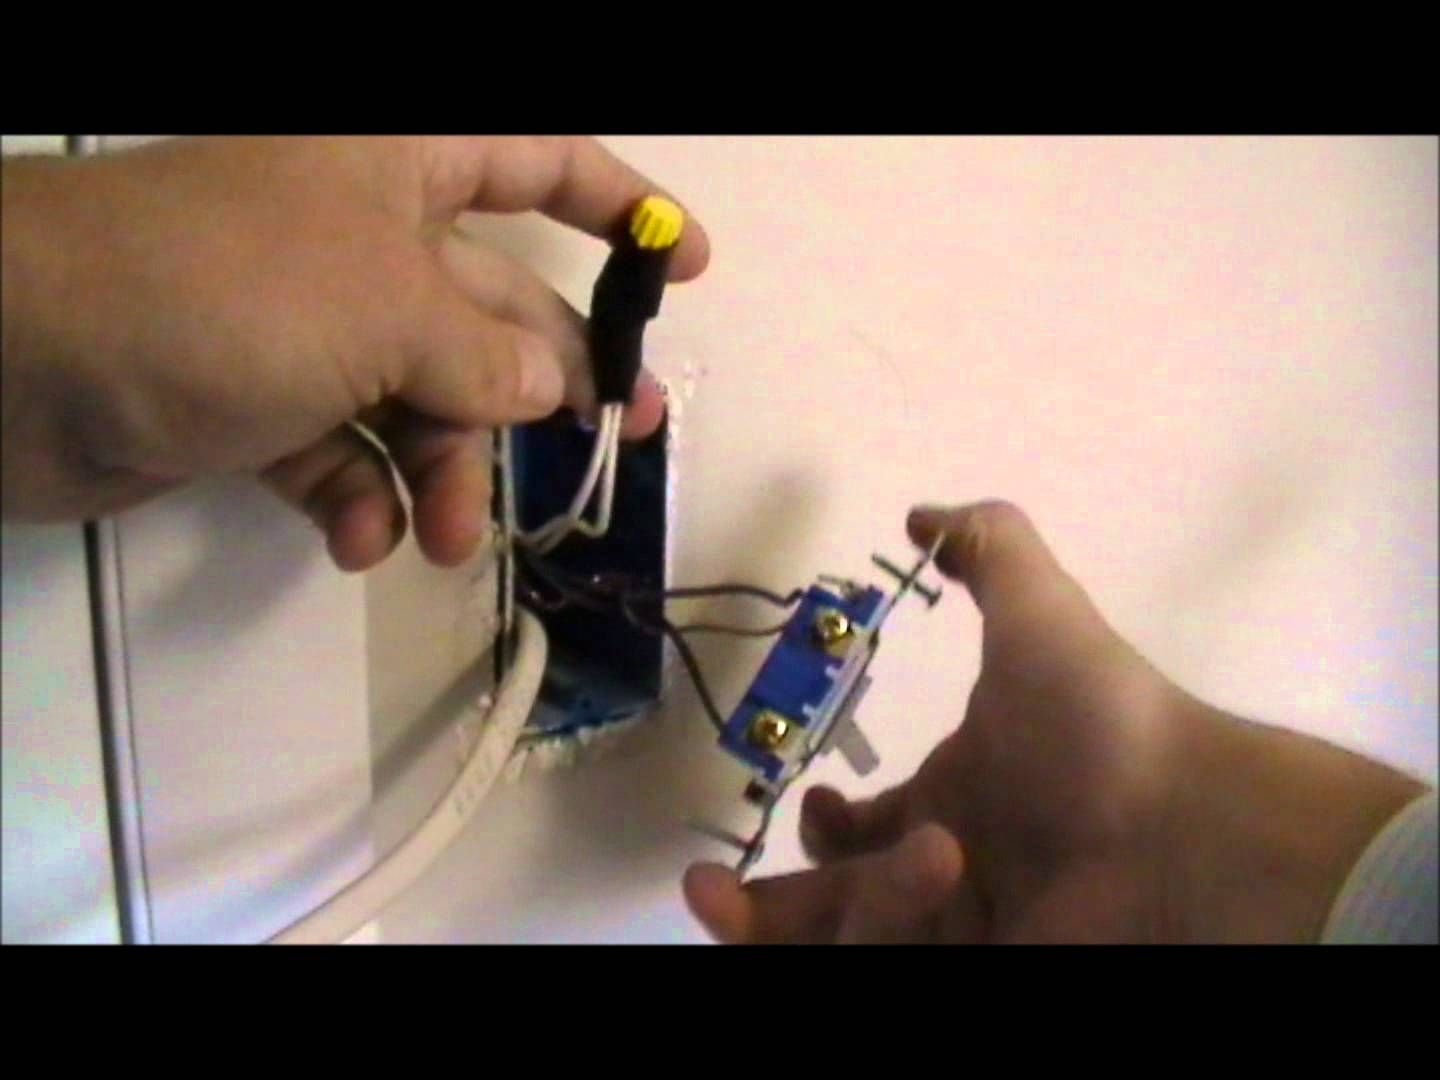 How To Fish A New Wire From Light Switch Down The Wall Wiring Household Outlet